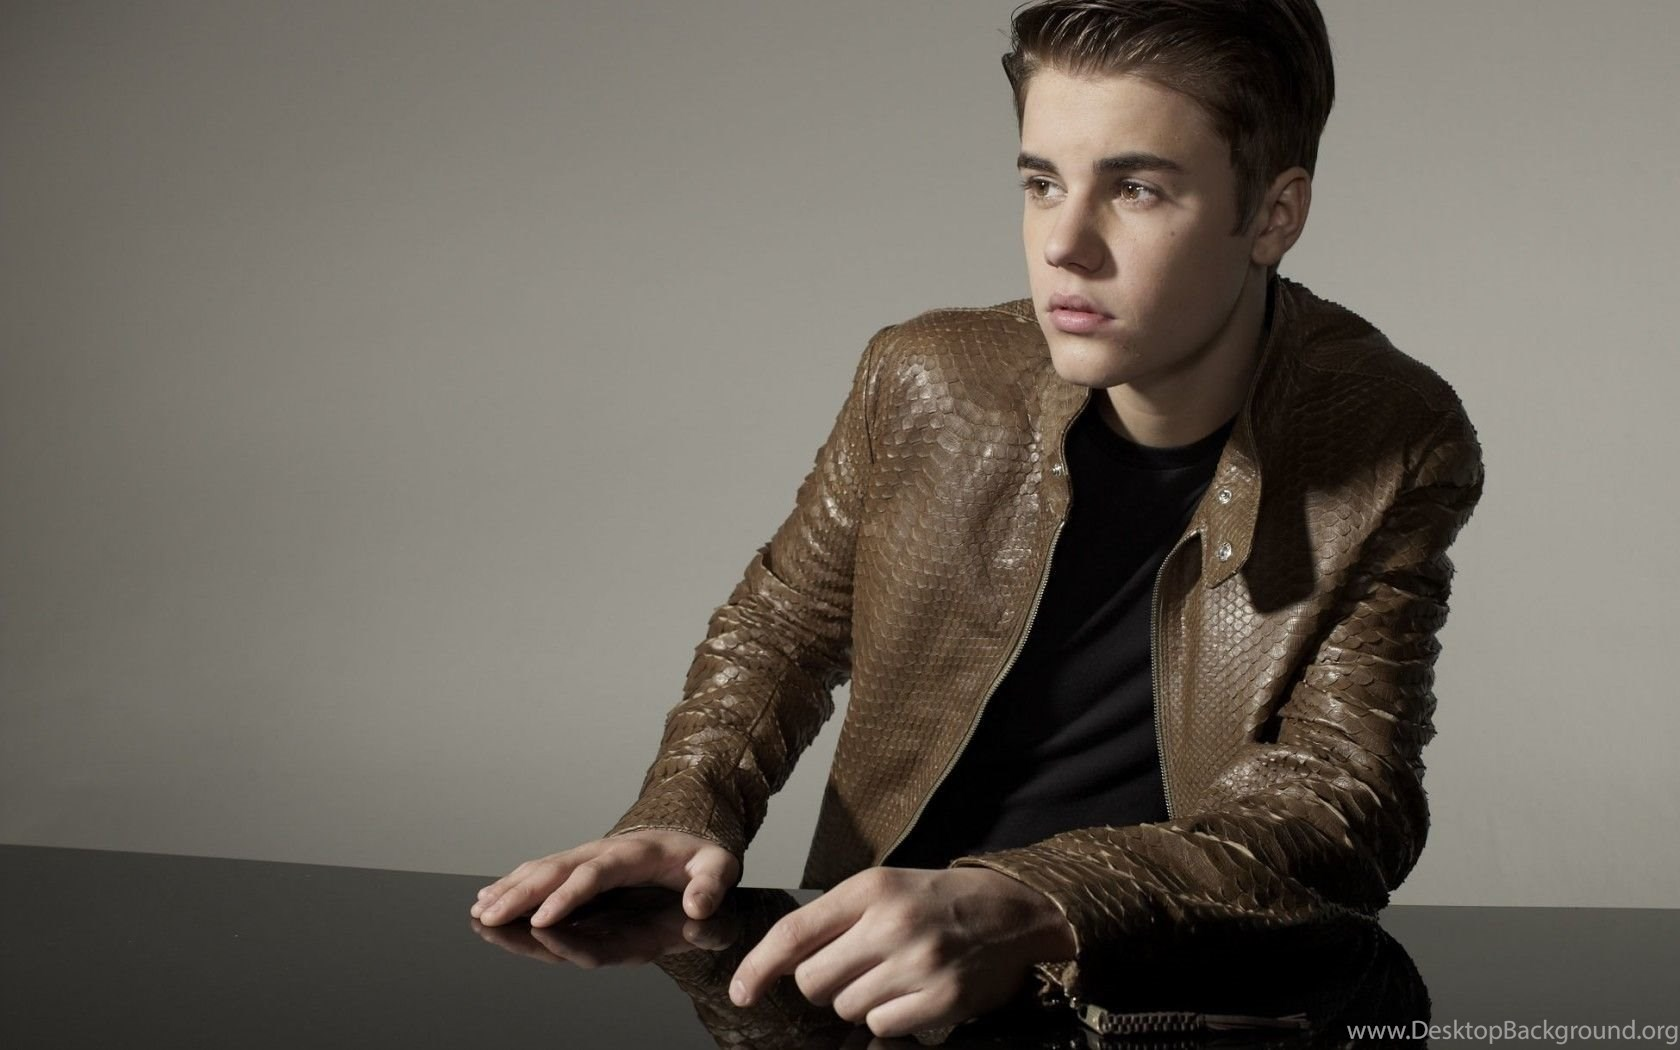 Justin Bieber Wallpapers For Phone Download 53554 Full HD